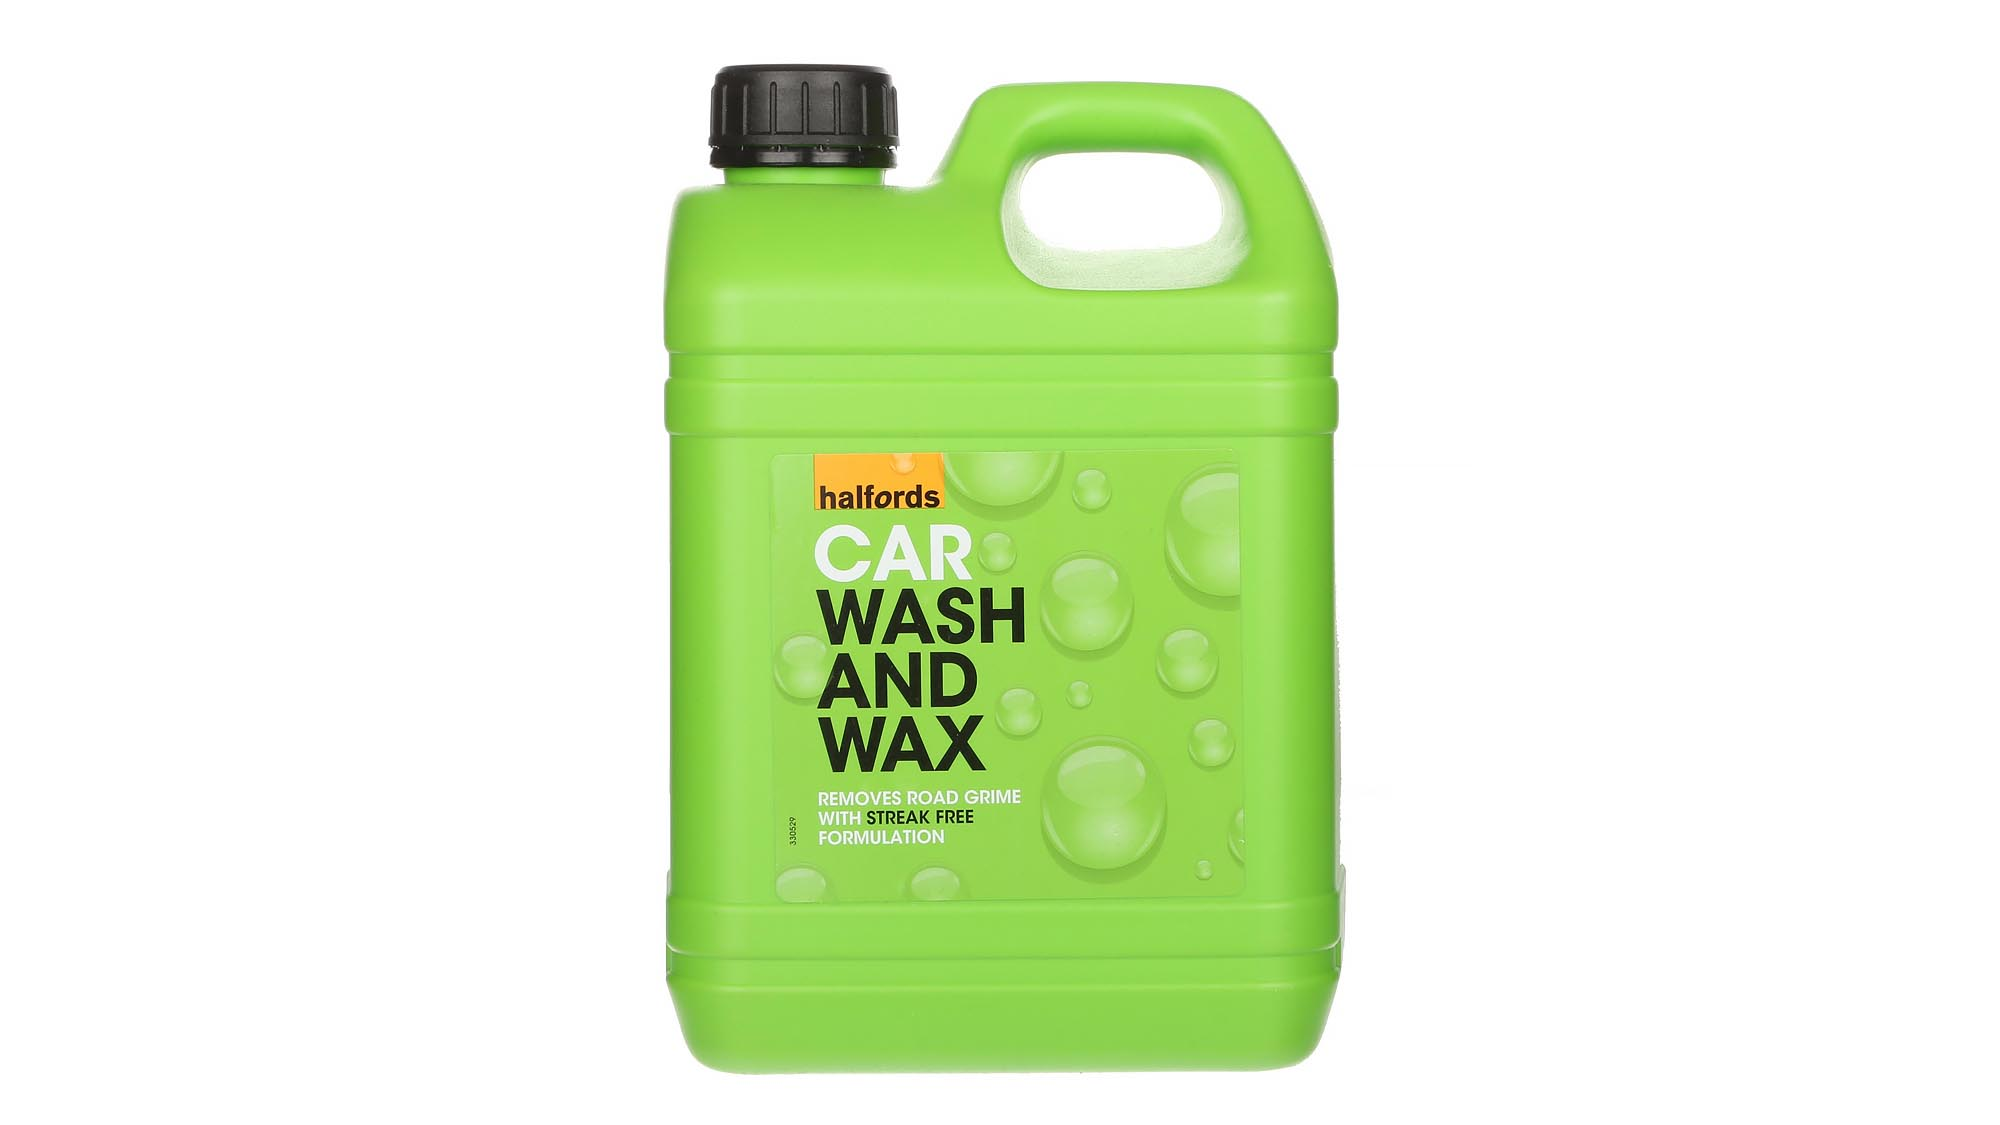 Best car shampoo get your car sparkling clean with the best best car shampoo get your car sparkling clean with the best shampoos from just 5 expert reviews solutioingenieria Image collections